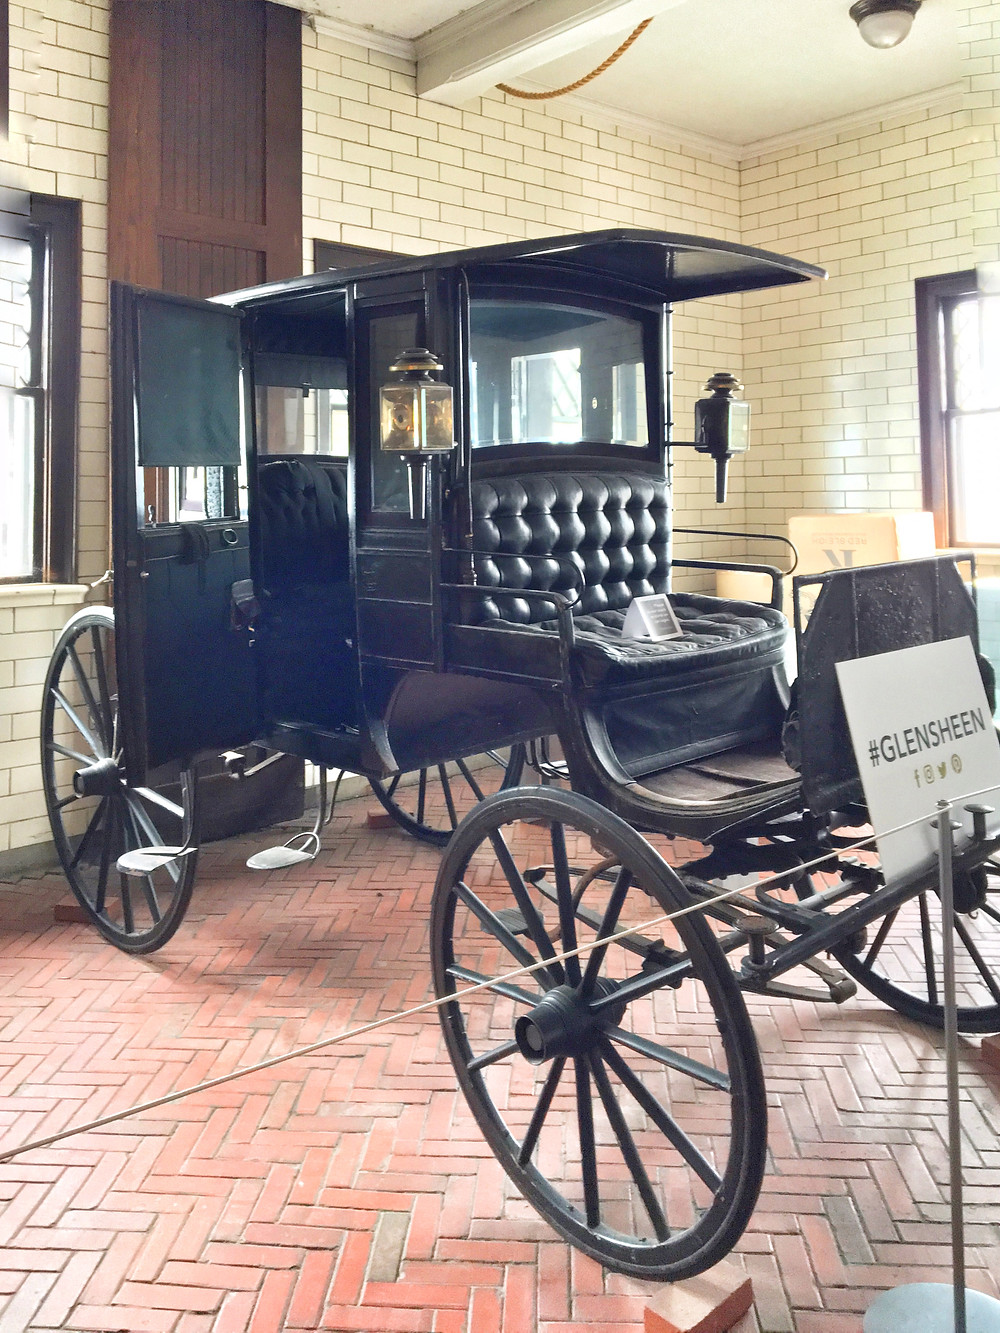 EH Design Blog - Carriage House of Tack Room showing the tack for the horses